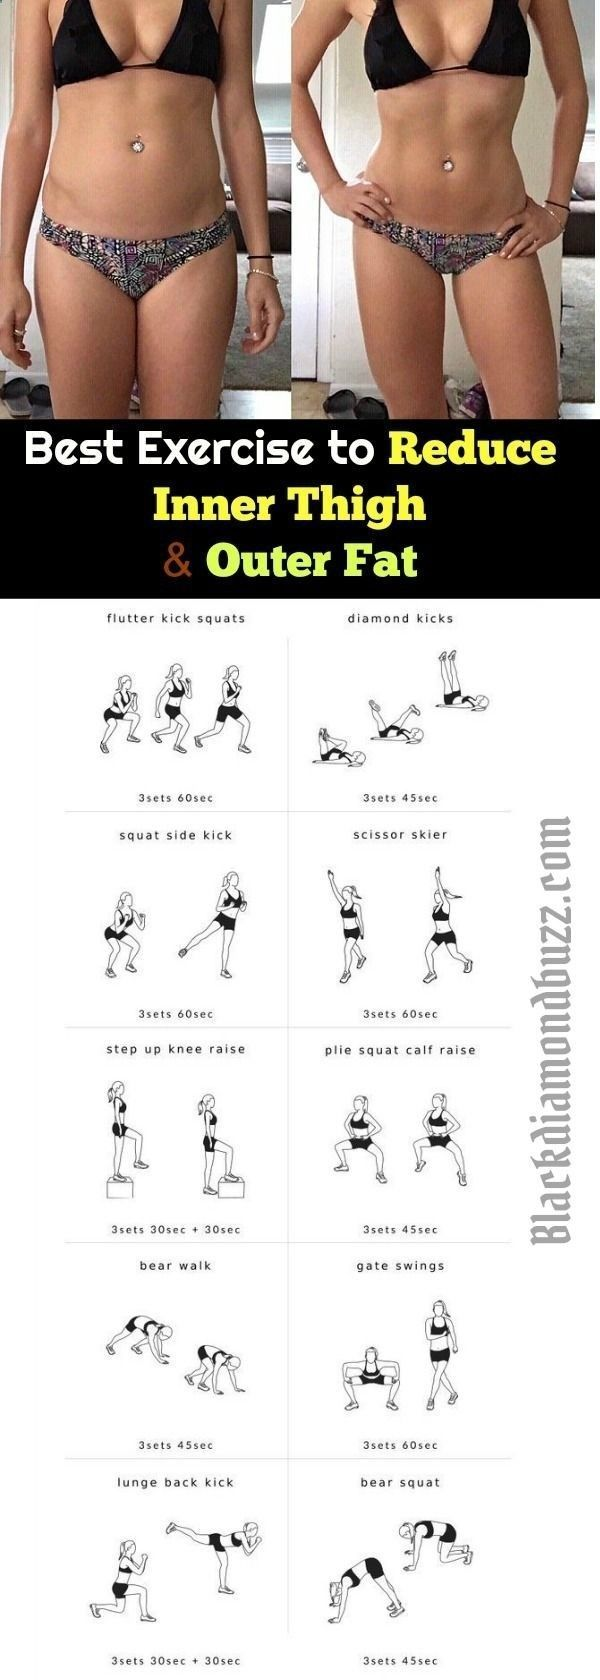 Fat Fast Shrinking Signal Diet-Recipes - Best Exercise to Reduce Inner Thigh and Outer Fat Fast in a Week: In the exercise you will learn how to get rid of that suborn thigh fat and hips fat at home by eva.ritz - Do This One Unusual 10-Minute Trick Befor